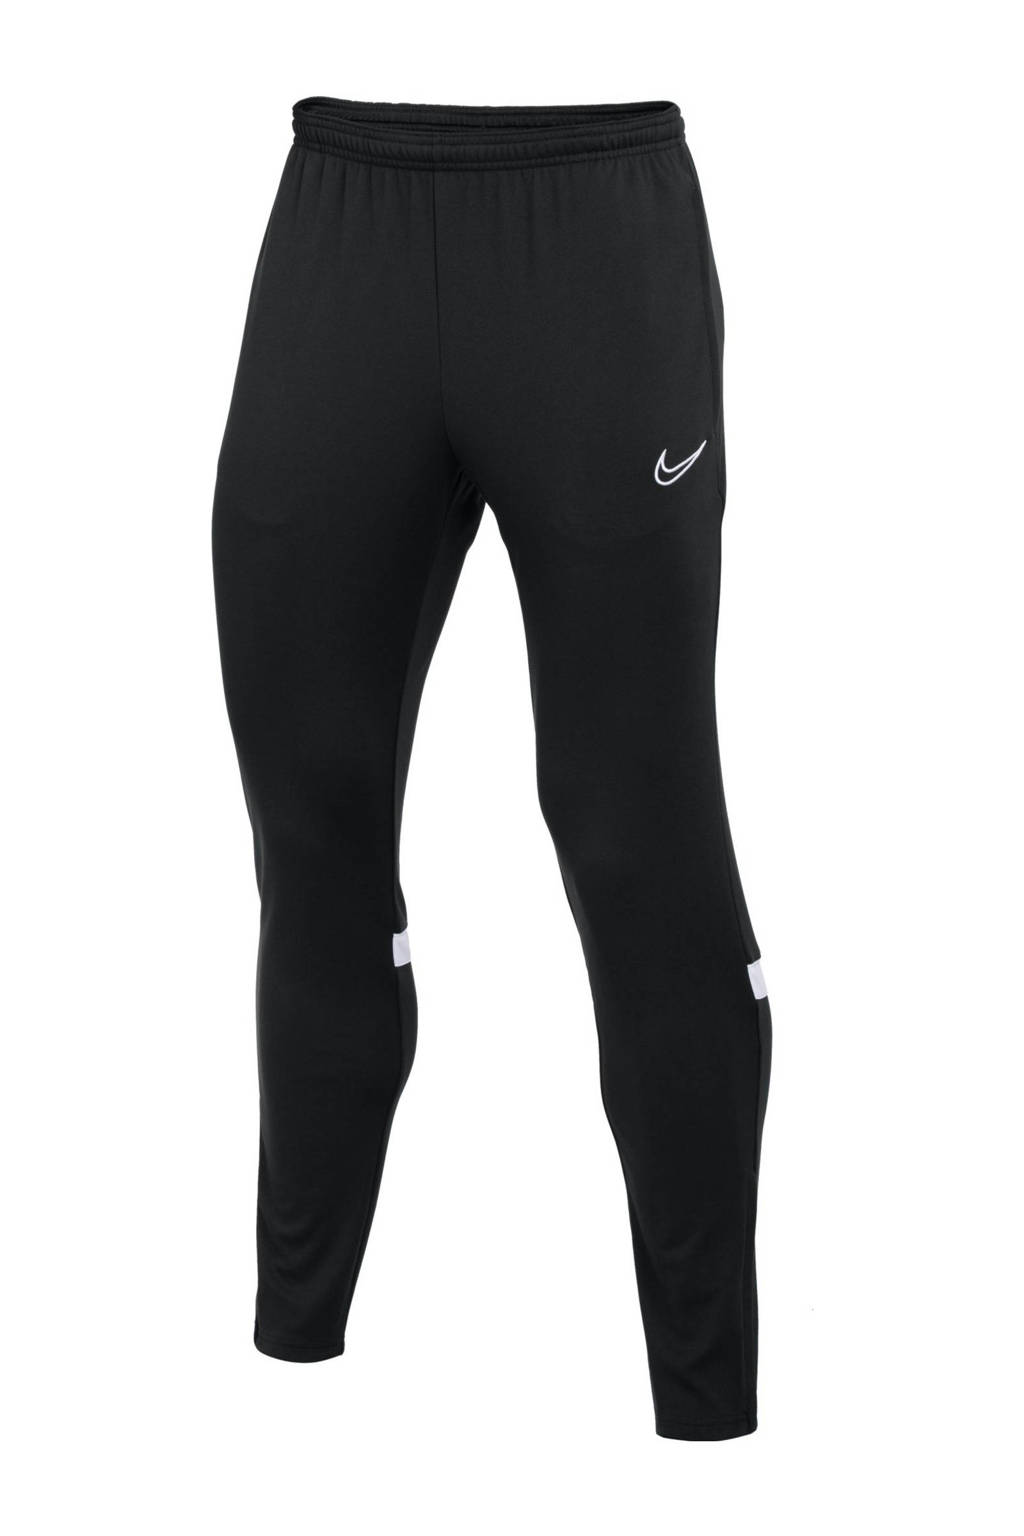 Nike Junior  trainingsbroek zwart/wit, Zwart/wit